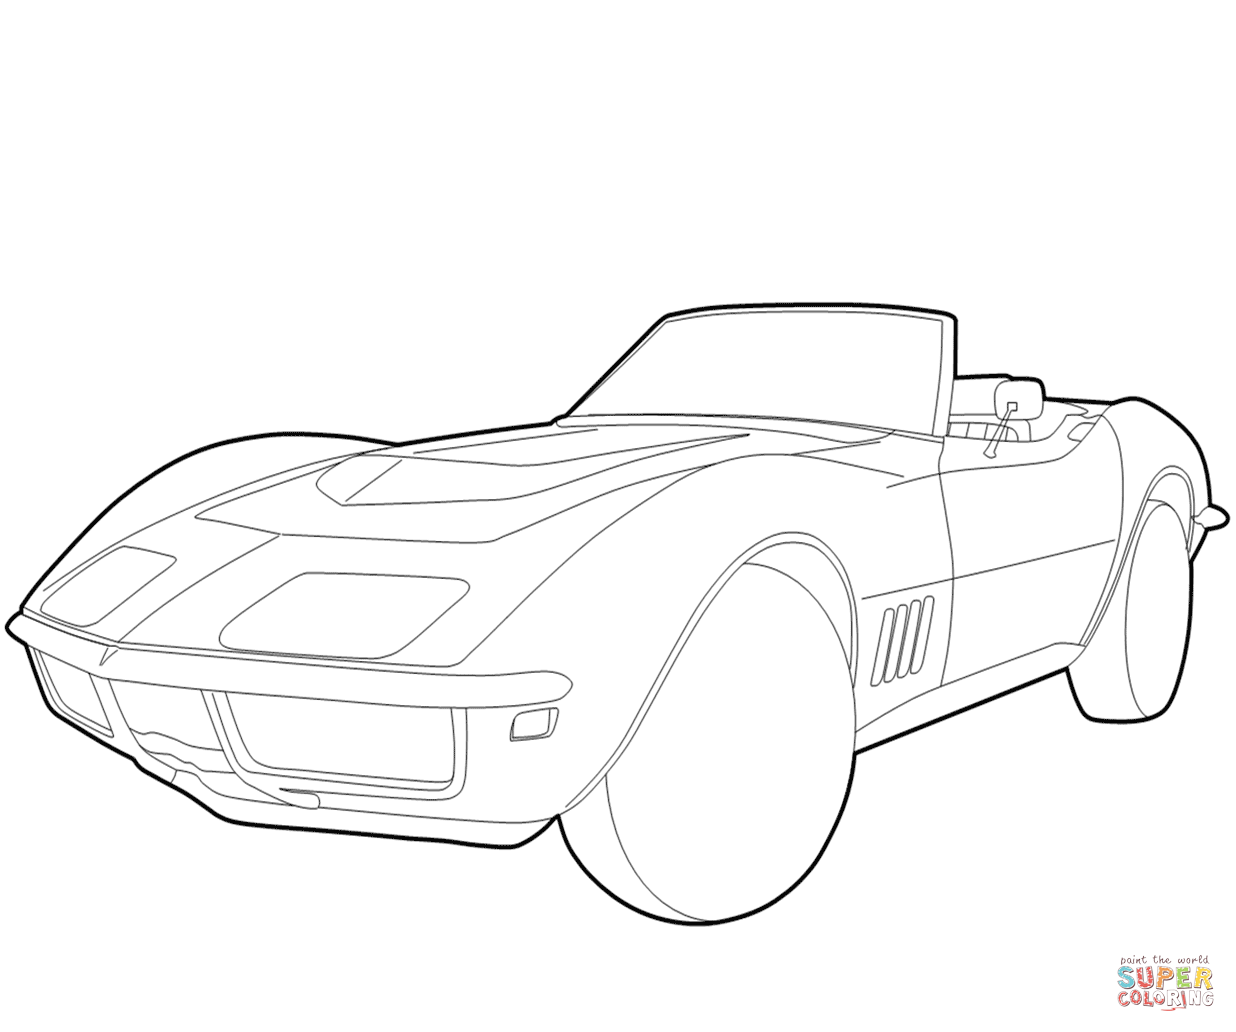 40+ Best Collections 69 Camaro Line Drawing